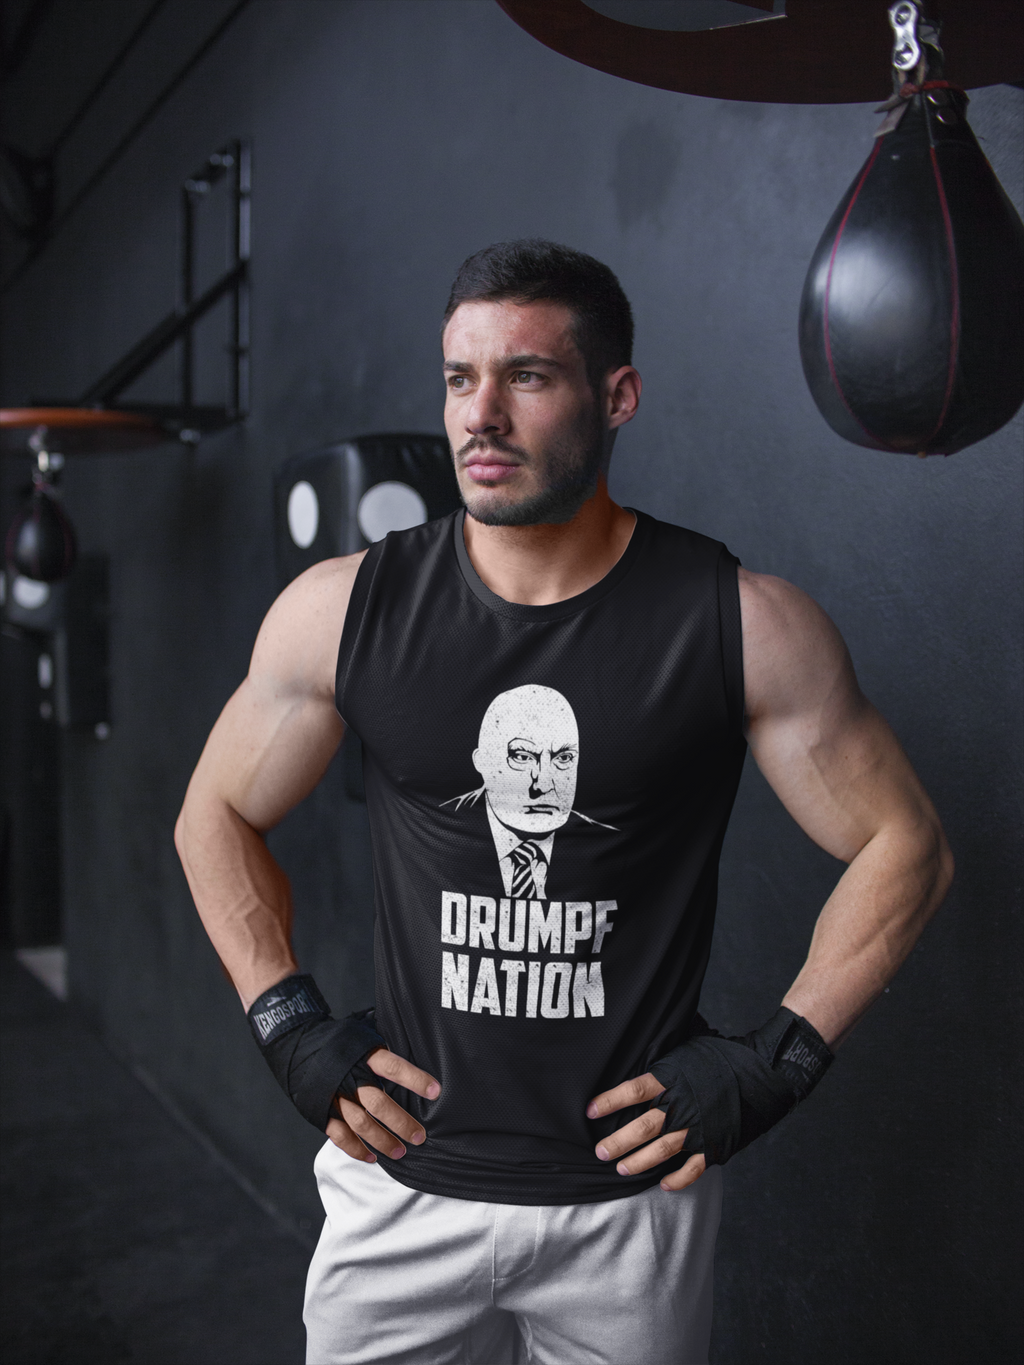 """Drumpf Nation"" Political Parody Unisex Tank Top"